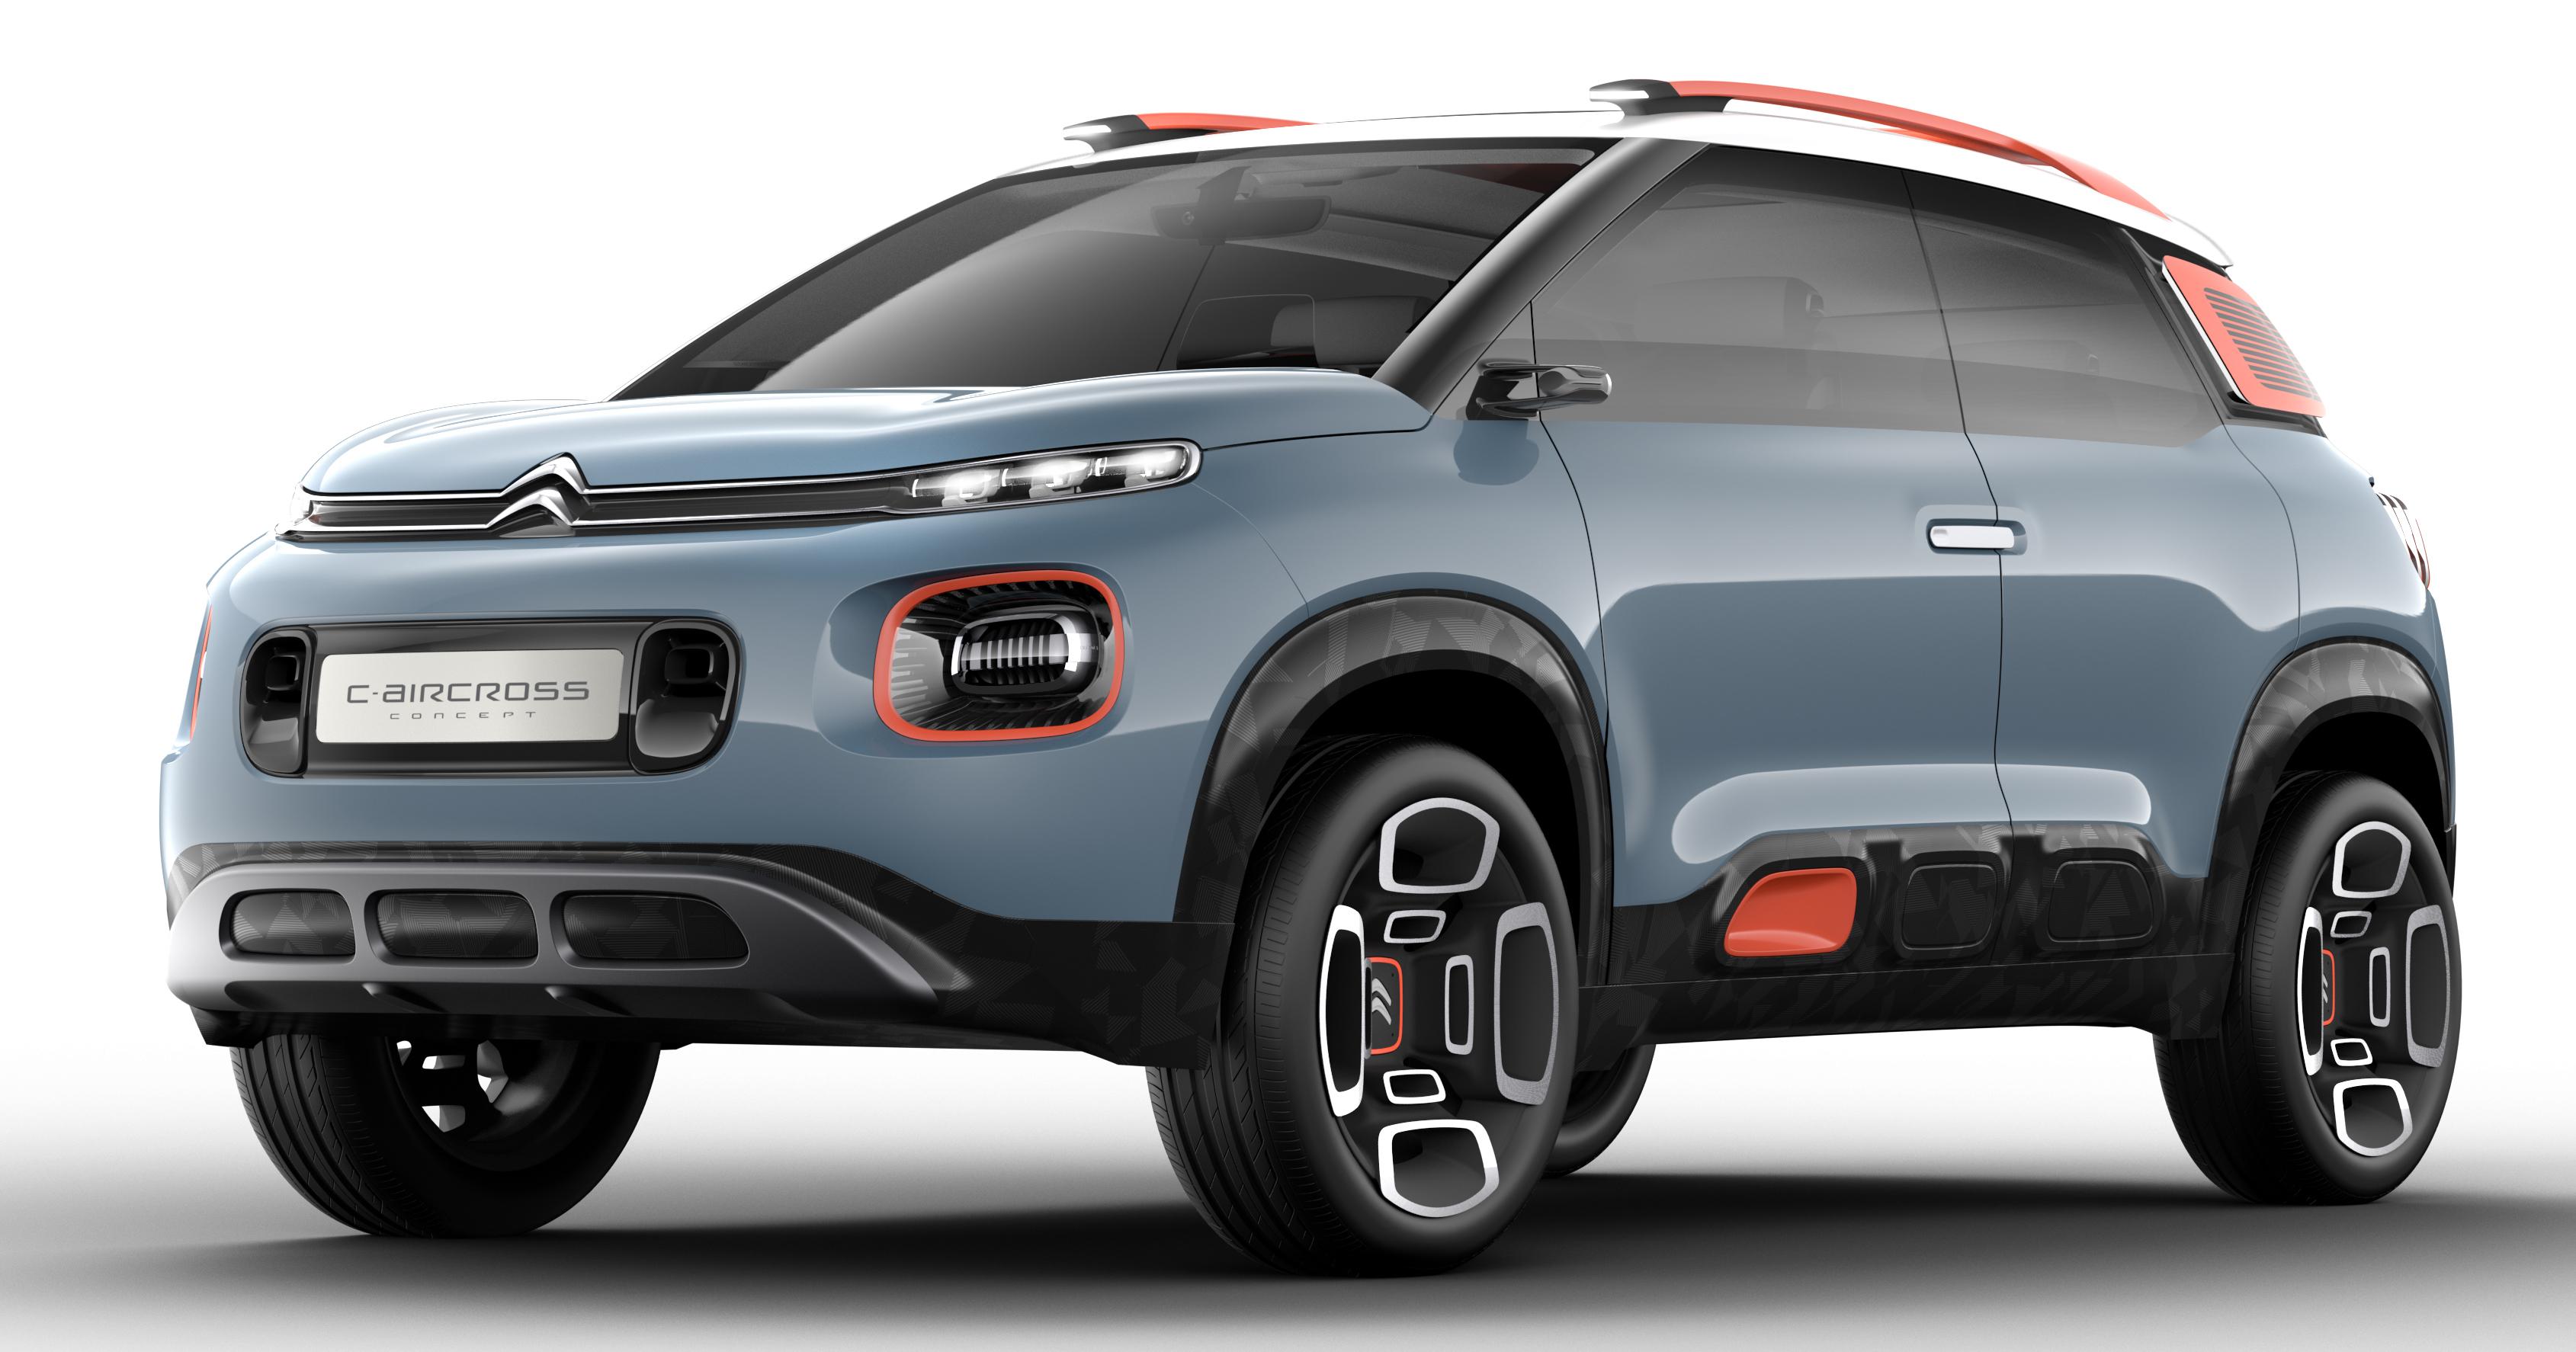 citroen c aircross concept shown new c3 picasso. Black Bedroom Furniture Sets. Home Design Ideas